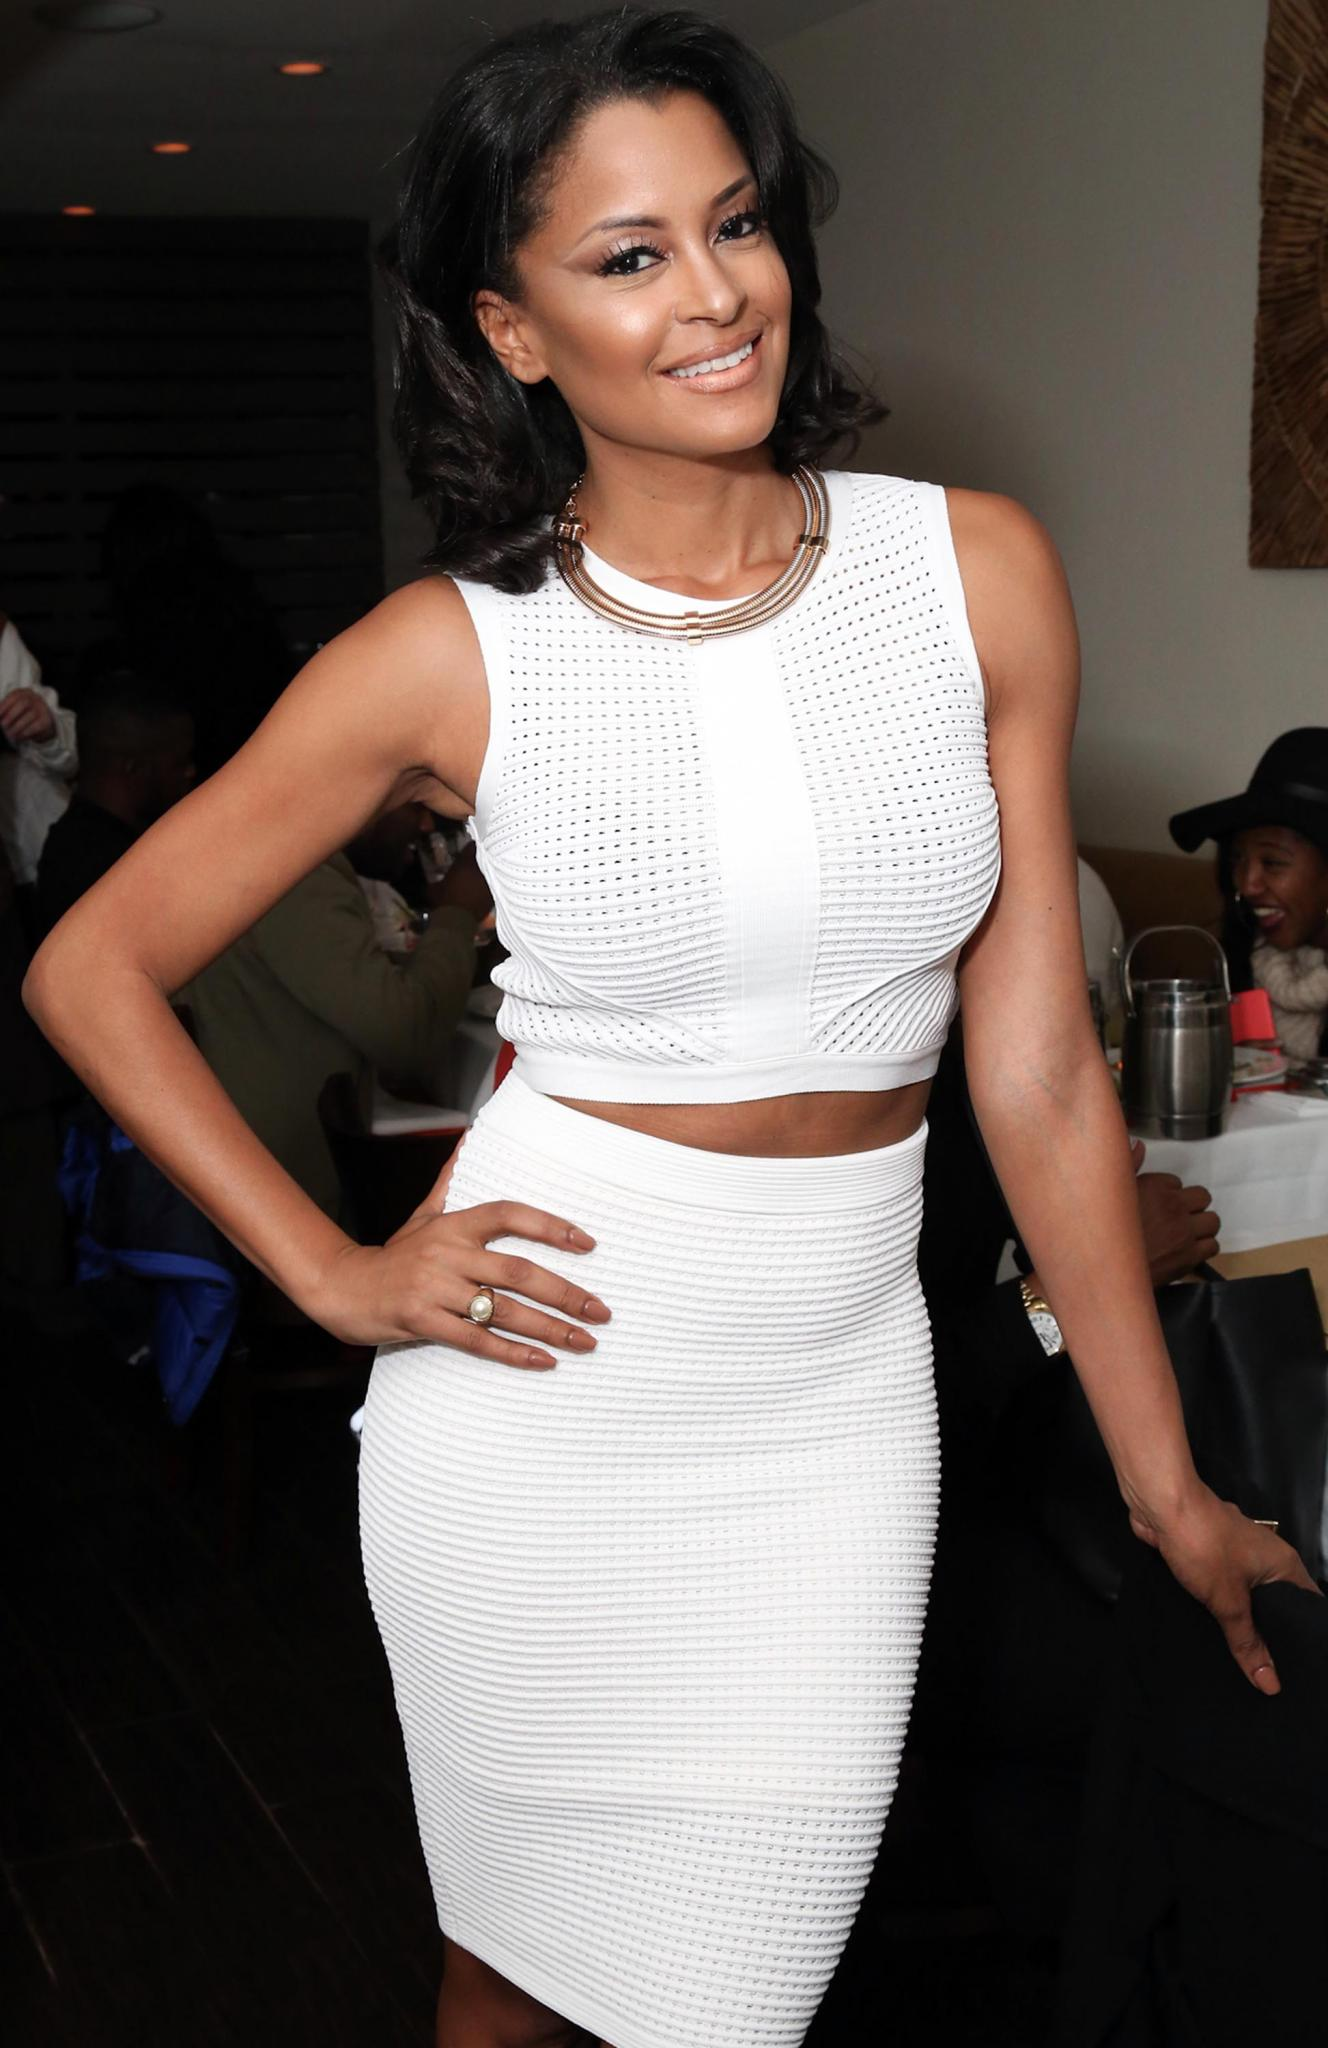 Claudia Jordan Pens Open Letter About Her Experience on 'Real Housewives of Atlanta'